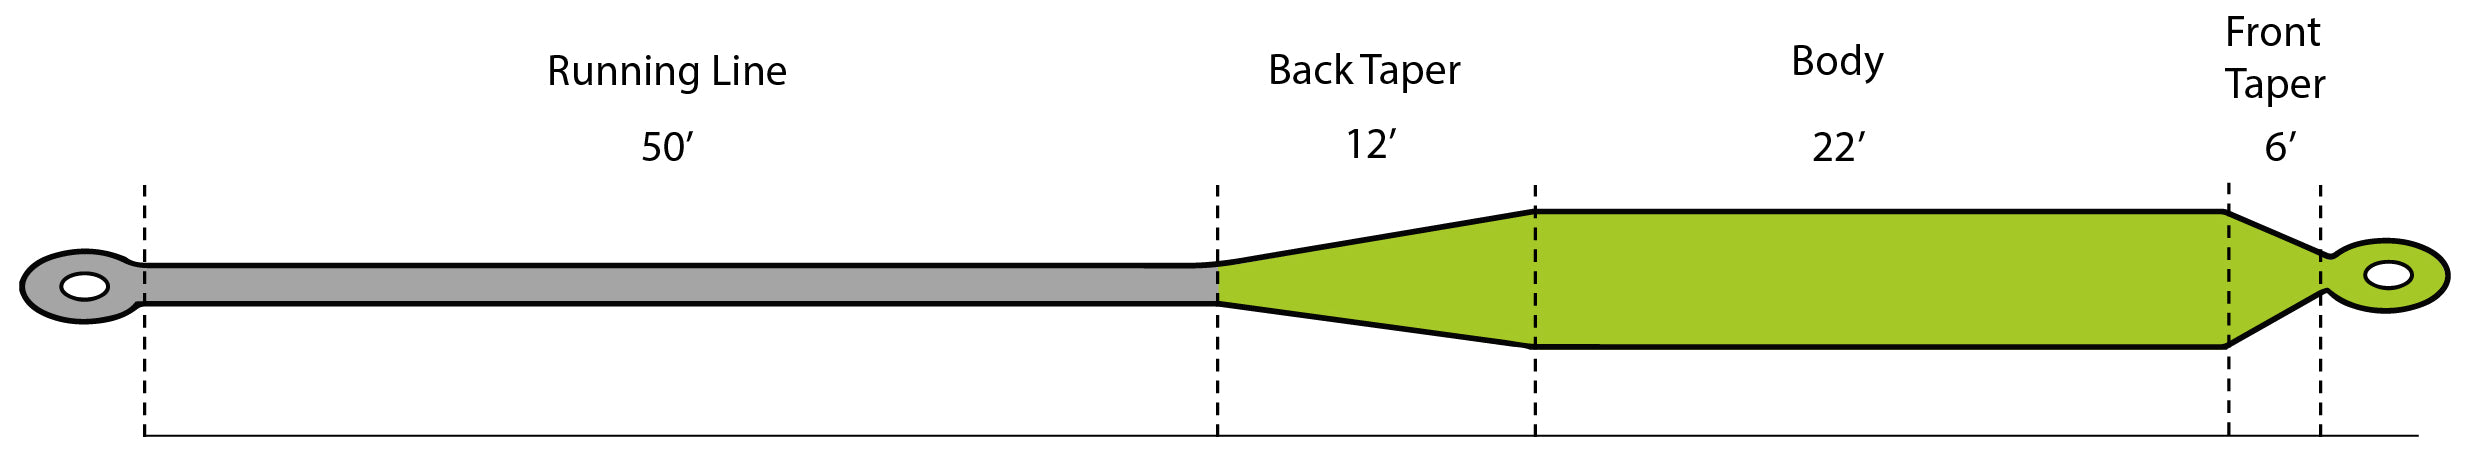 Fly Line Head Graphic